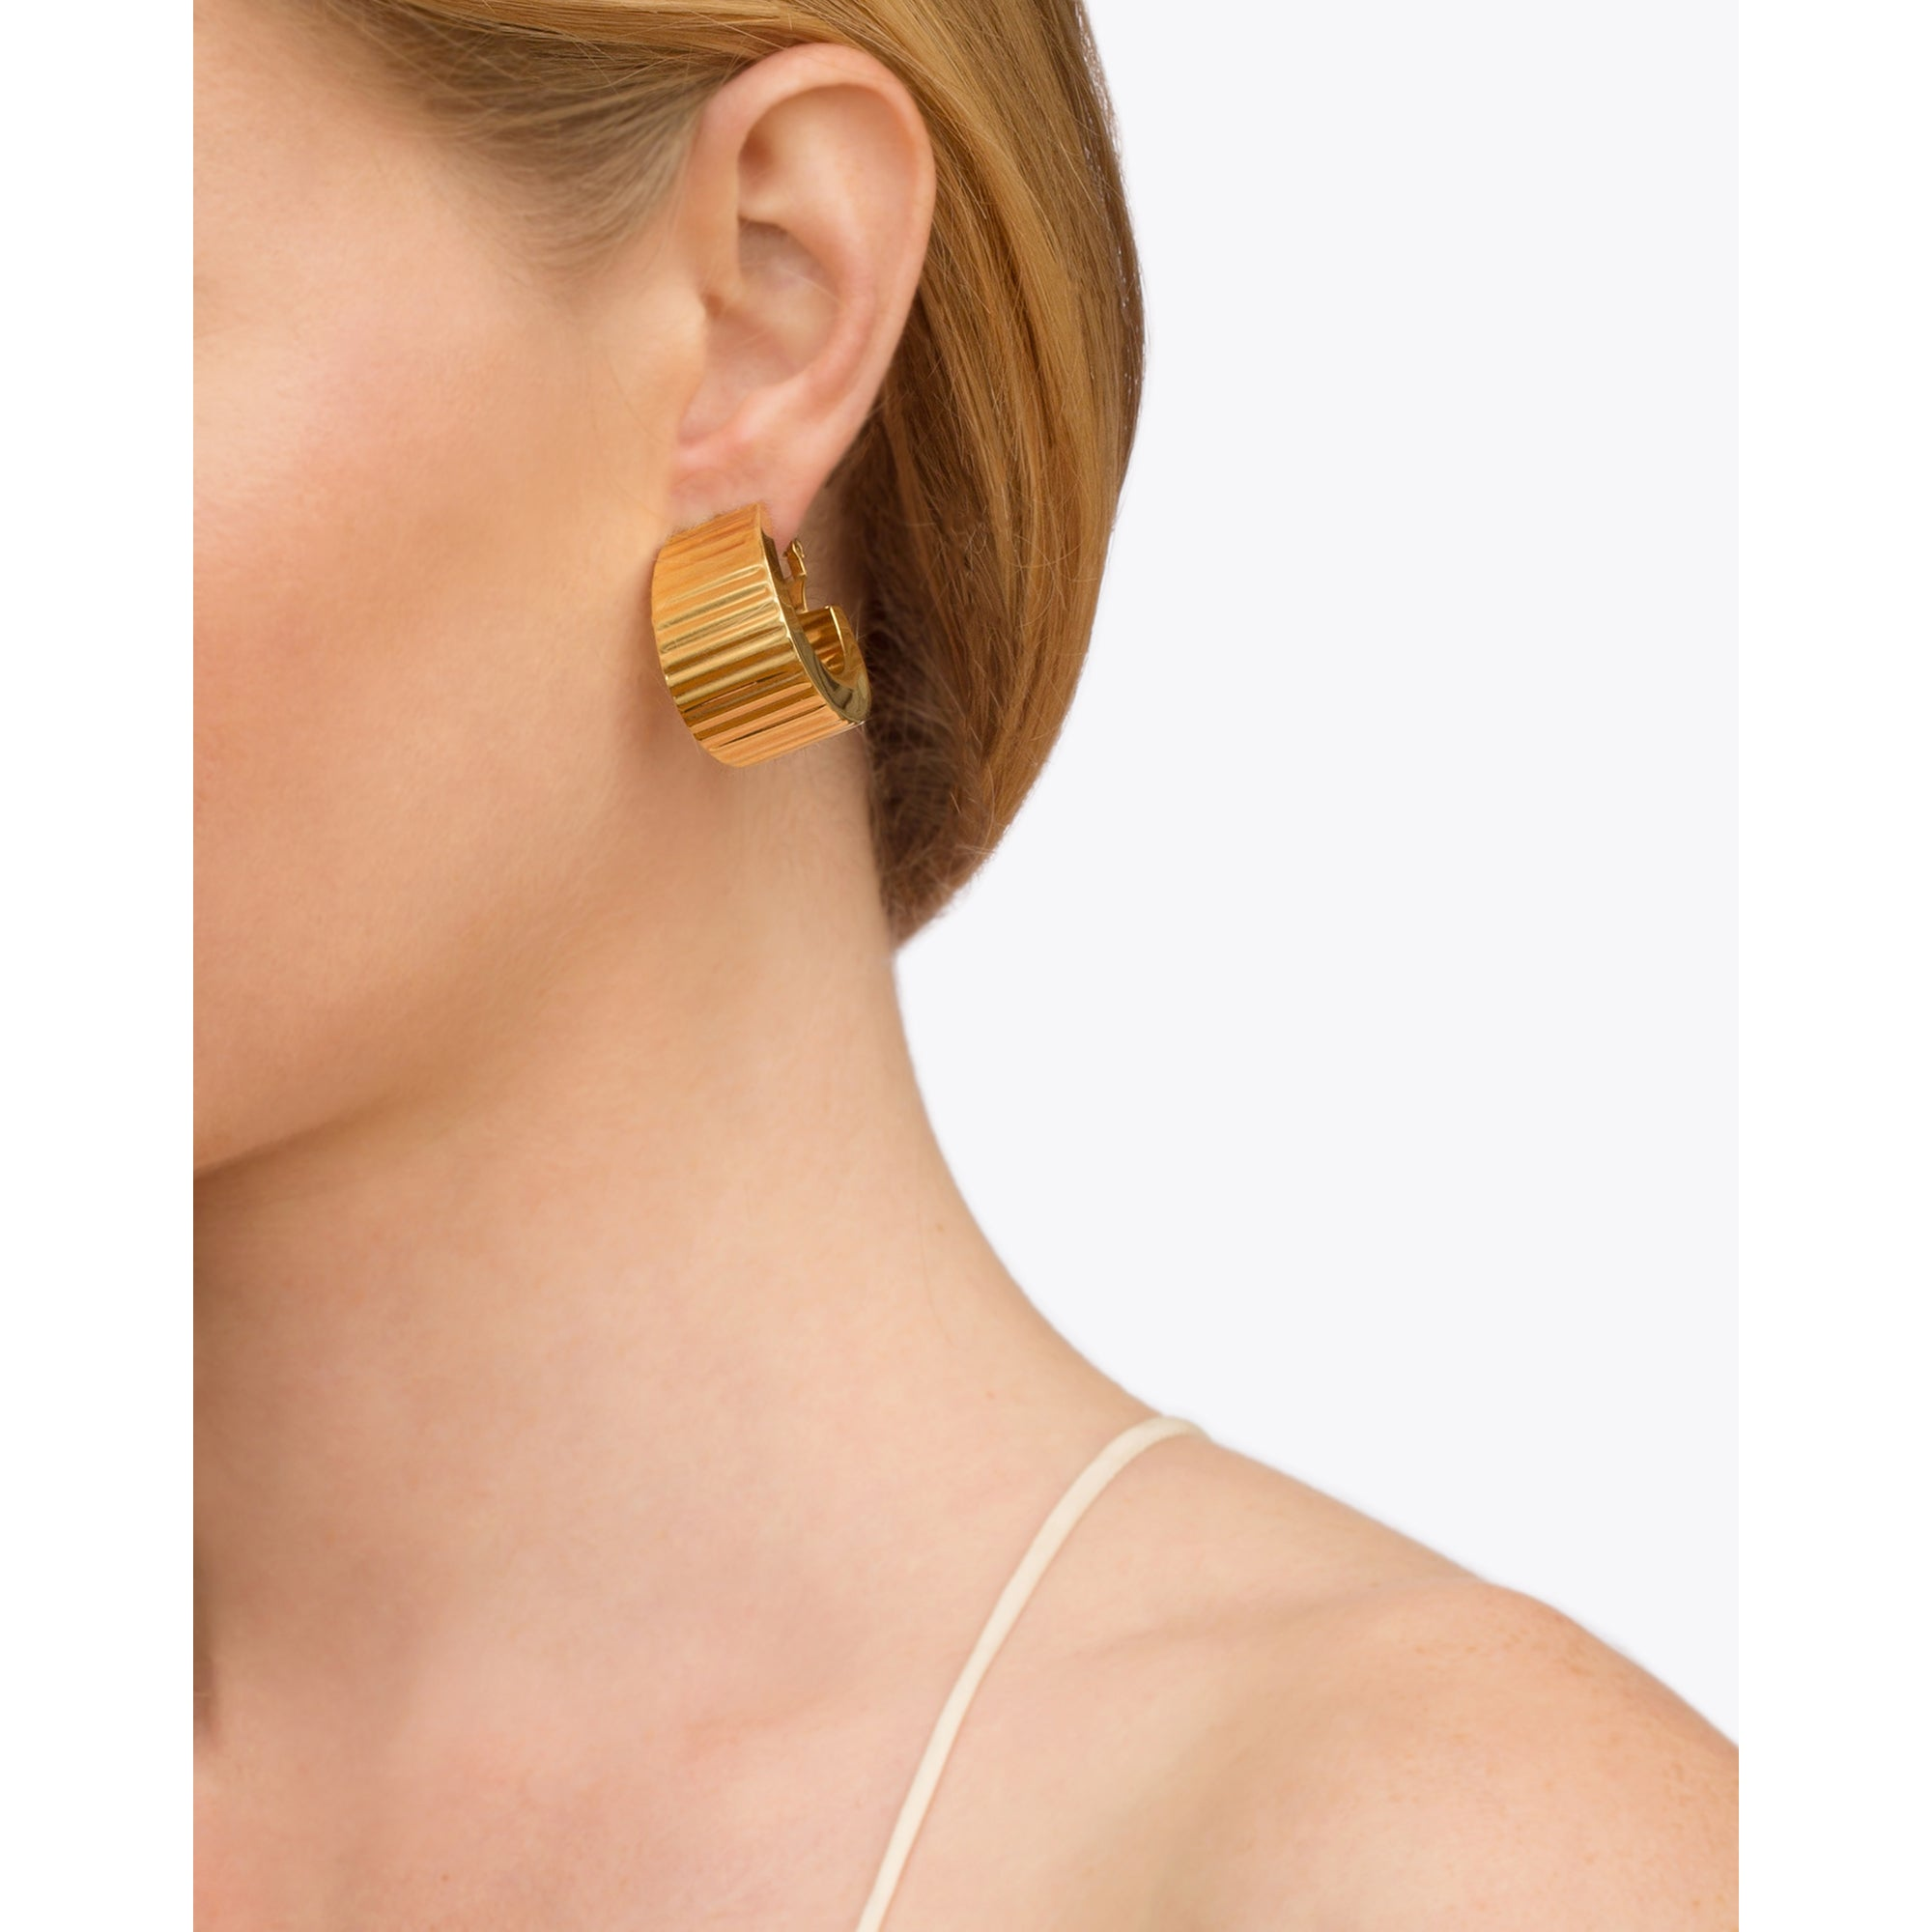 Gold Hoops from Broken English Jewelry